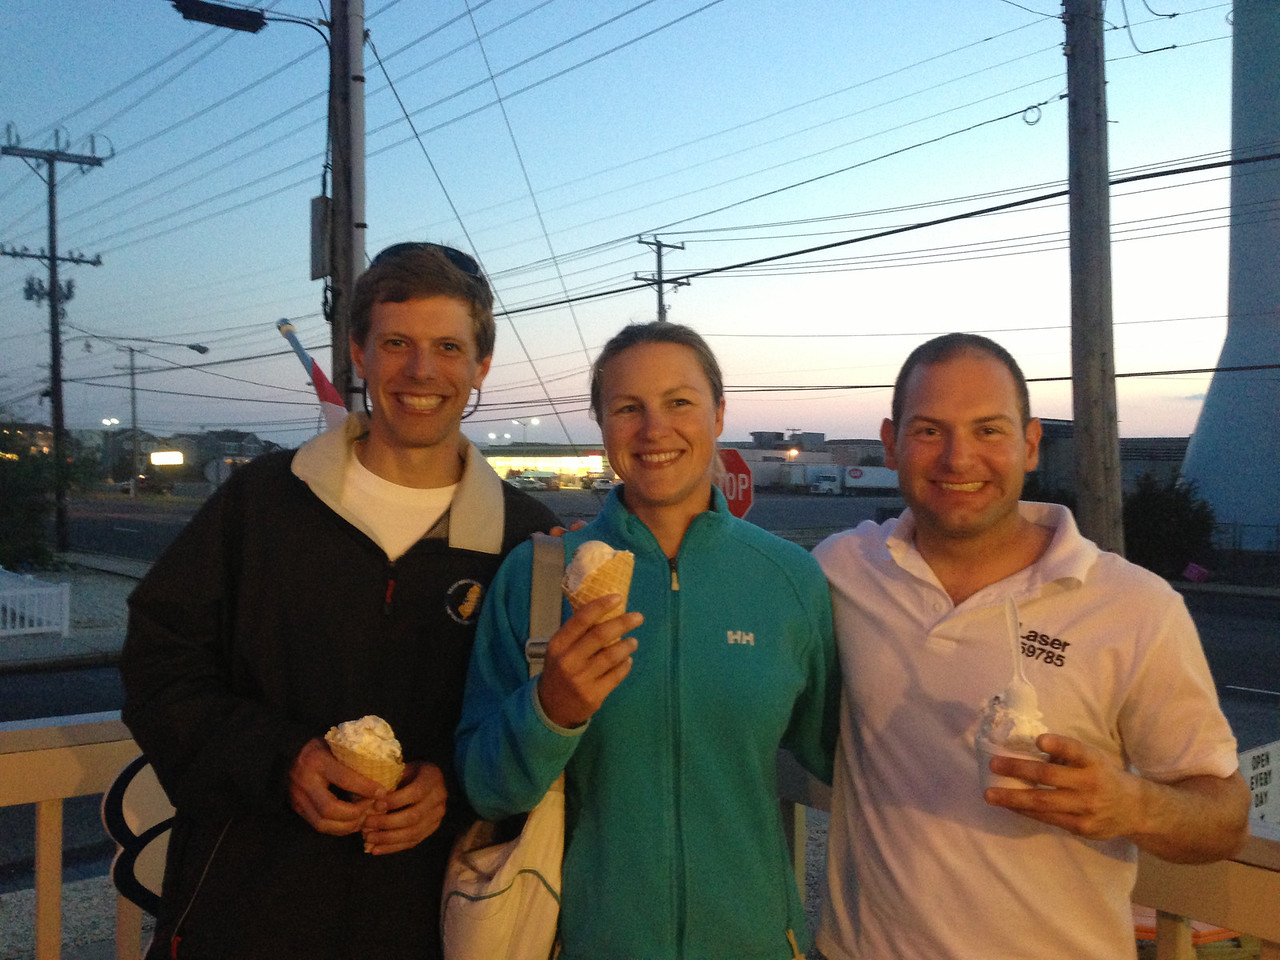 Eric, Christine, Jon stopping for ice cream after regatta dinner.